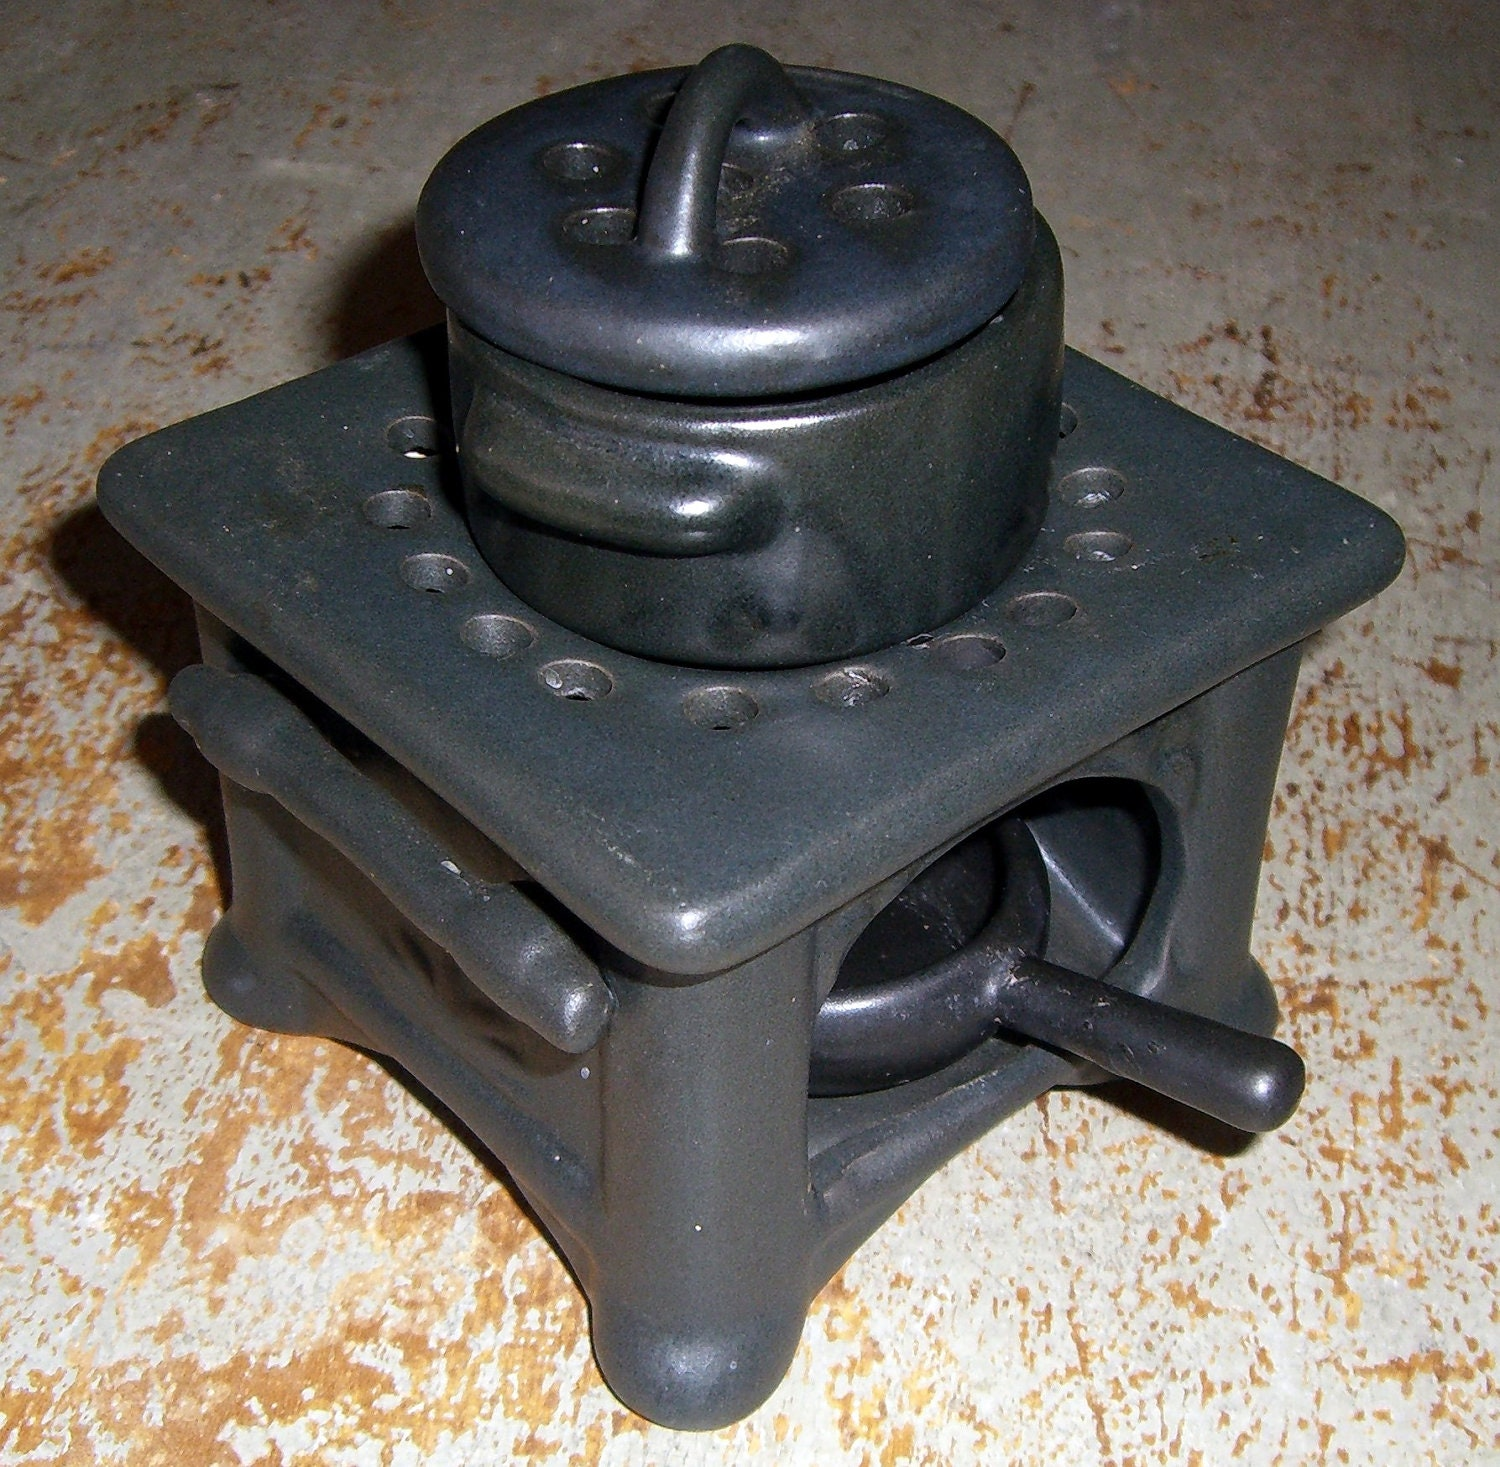 Mini Candle Stove: Candle & Tart Burner Old Black Stove